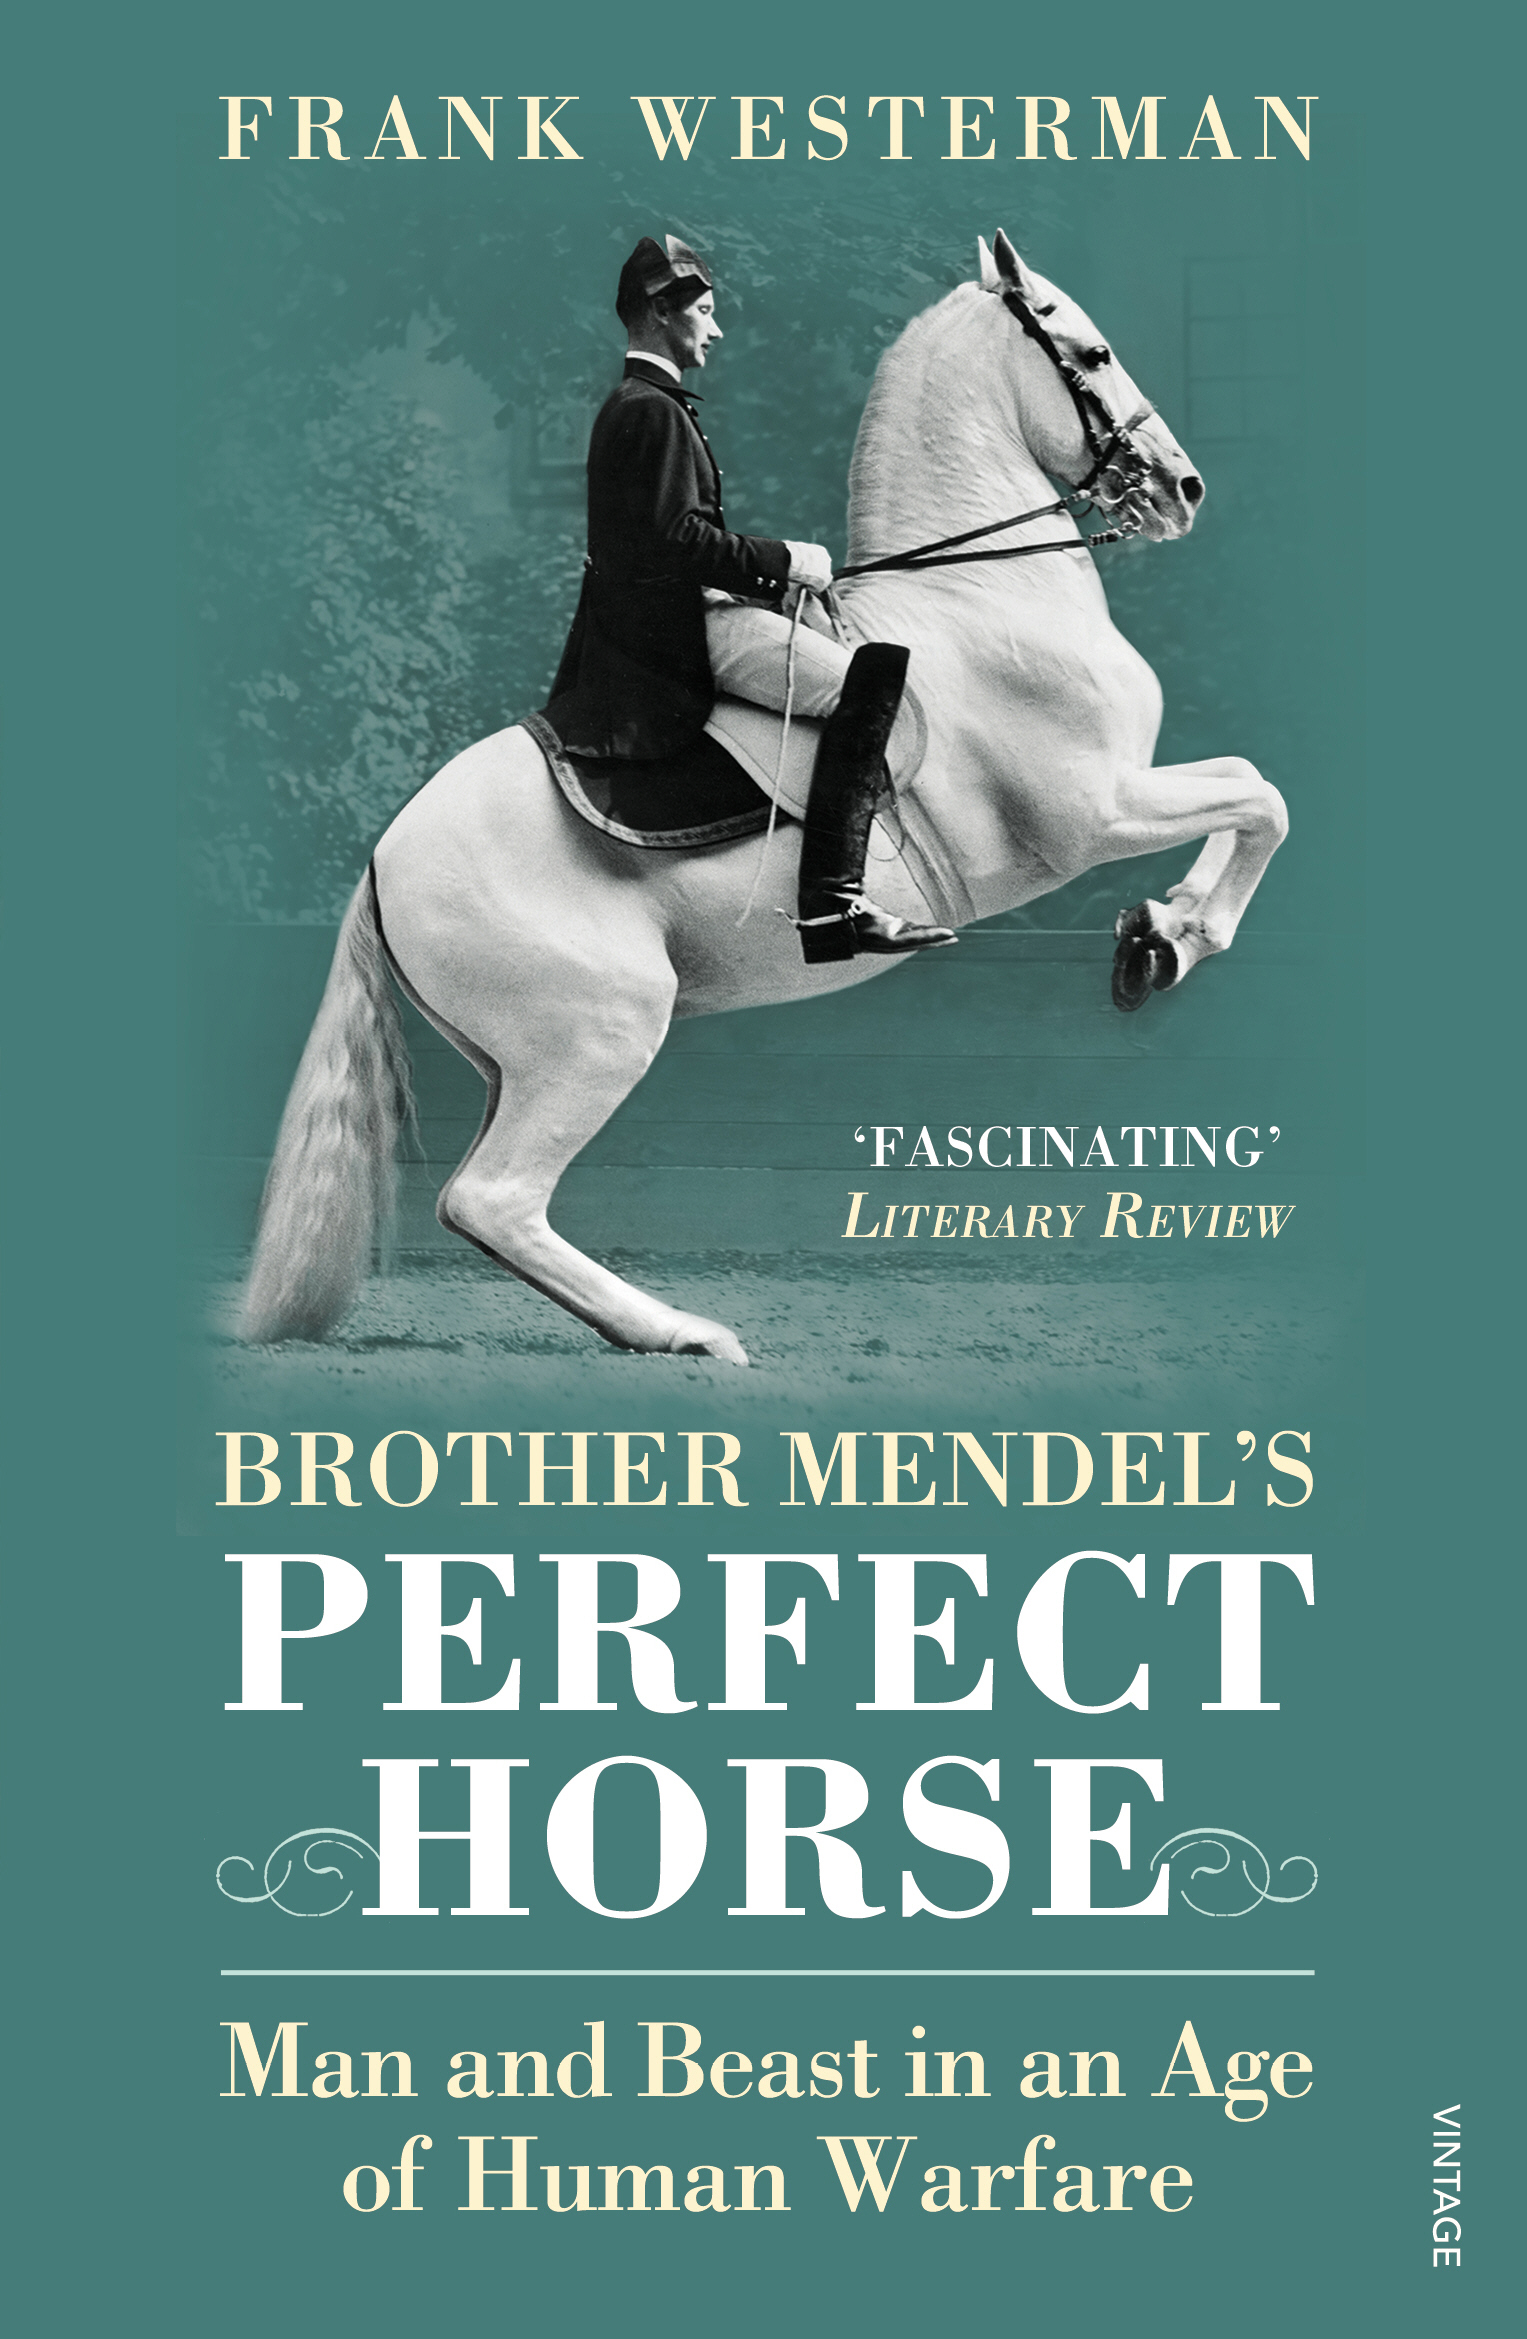 Brother Mendel's Perfect Horse Man and beast in an age of human warfare